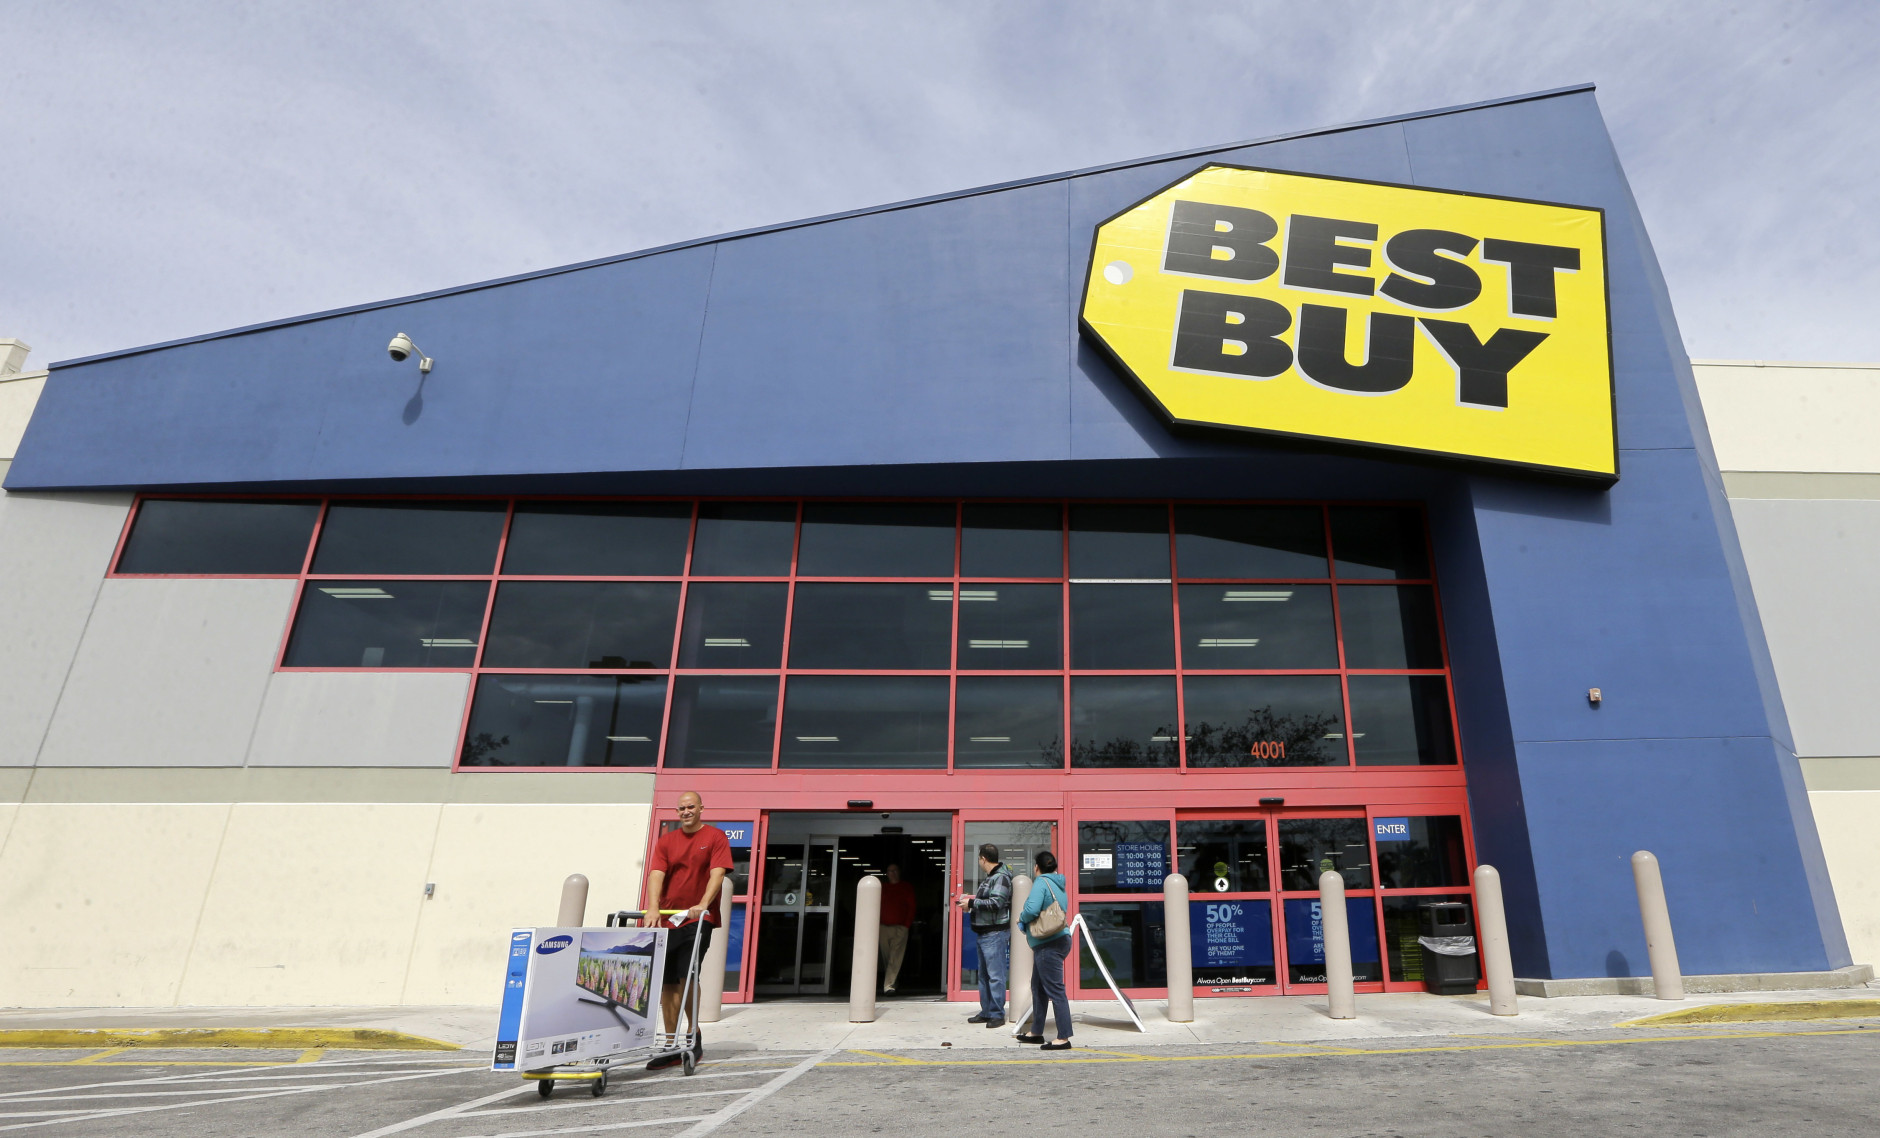 FILE - In this Tuesday, Feb. 9, 2016, file photo, a shopper carts his purchased LED TV at a Best Buy in Miami. On Tuesday, Aug. 23, Best Buy reports financial results. (AP Photo/Alan Diaz, File)